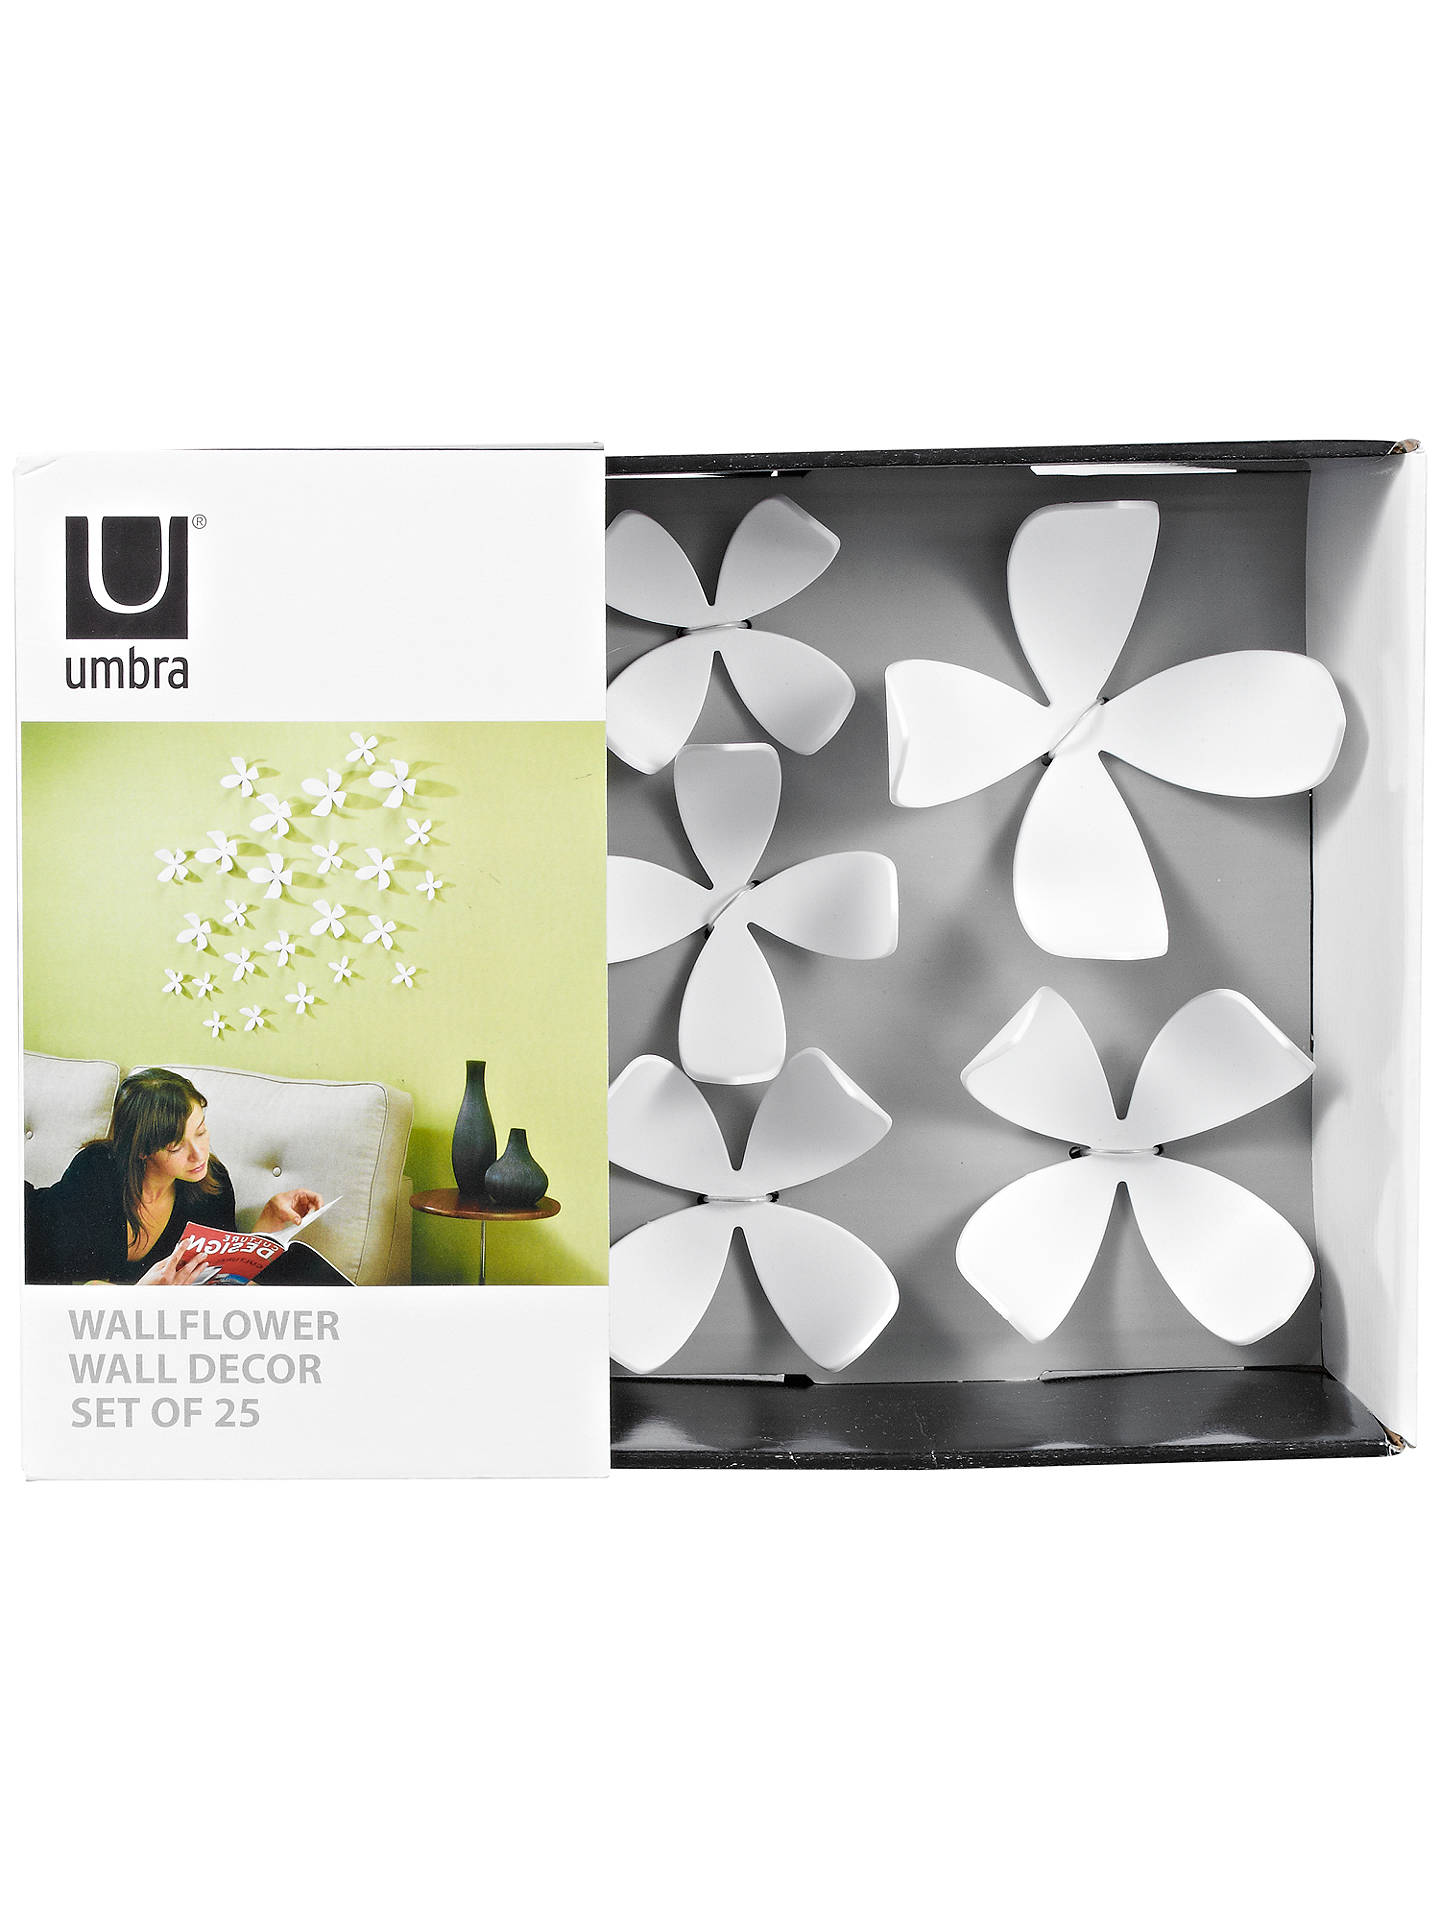 Buy Umbra Wallflower Wall Decor, White, Set of 25 Online at johnlewis.com